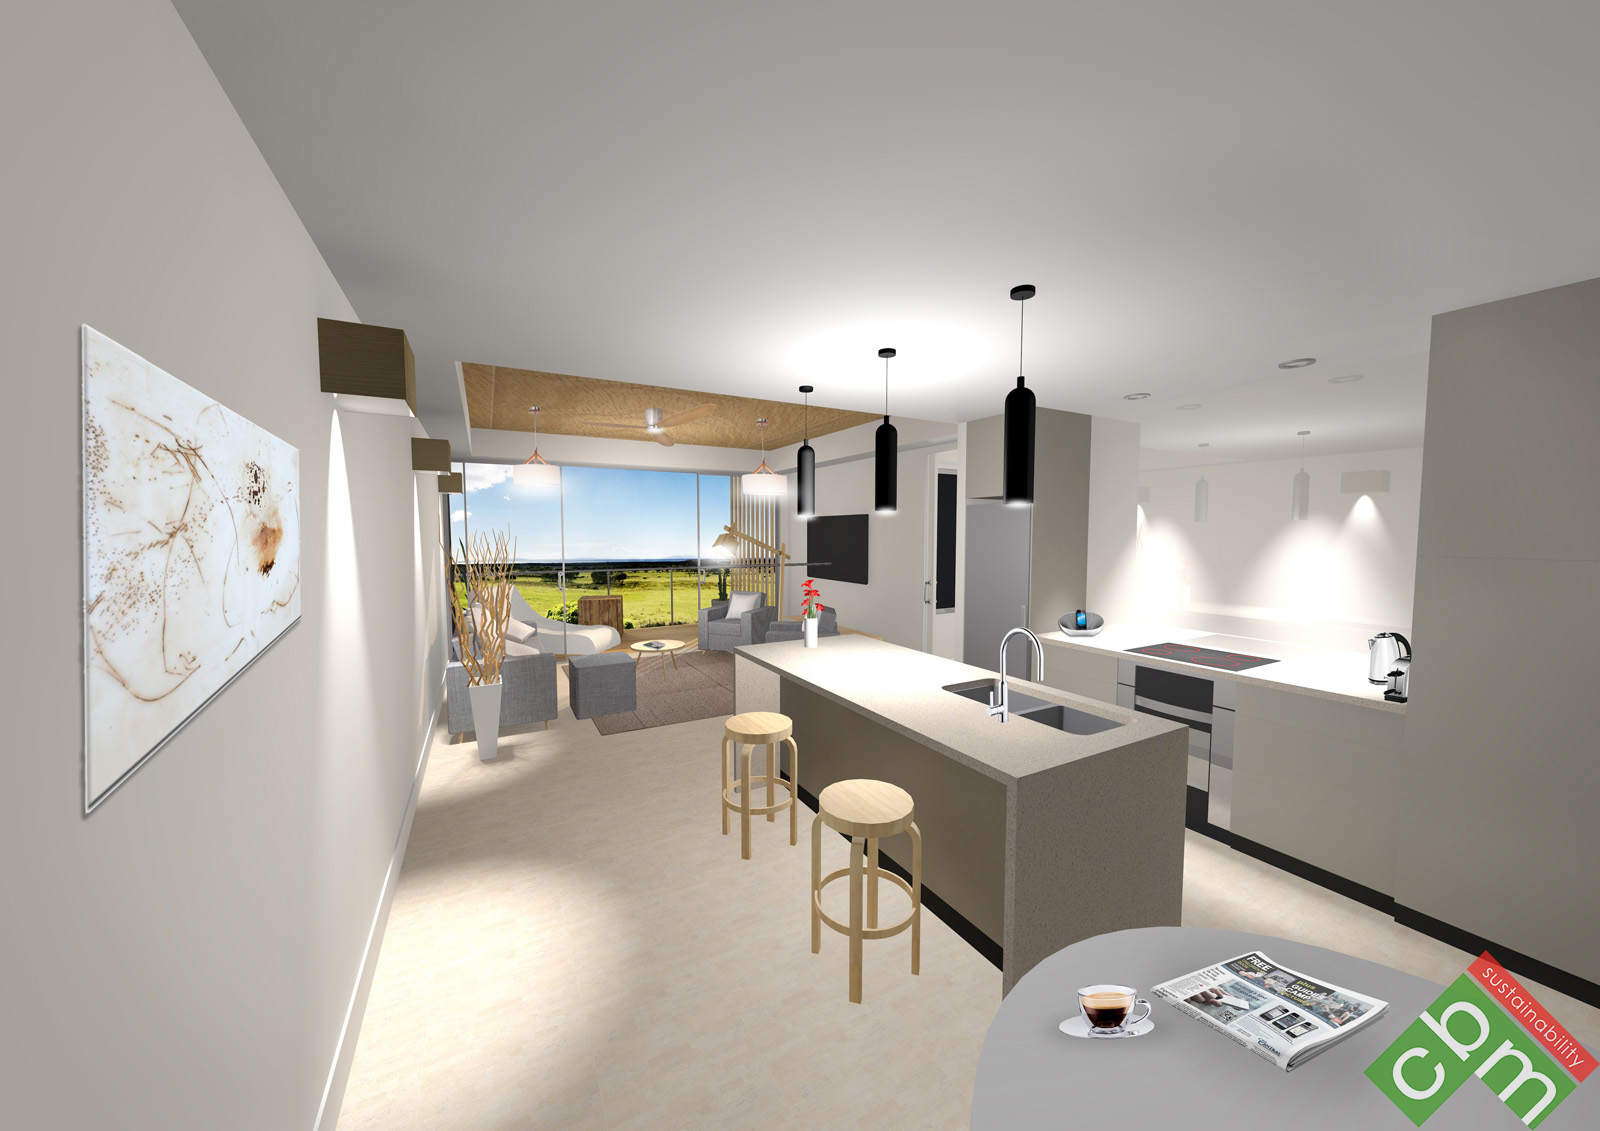 T1 Apartment Type 1 - Kitchen and Living 1.JPG